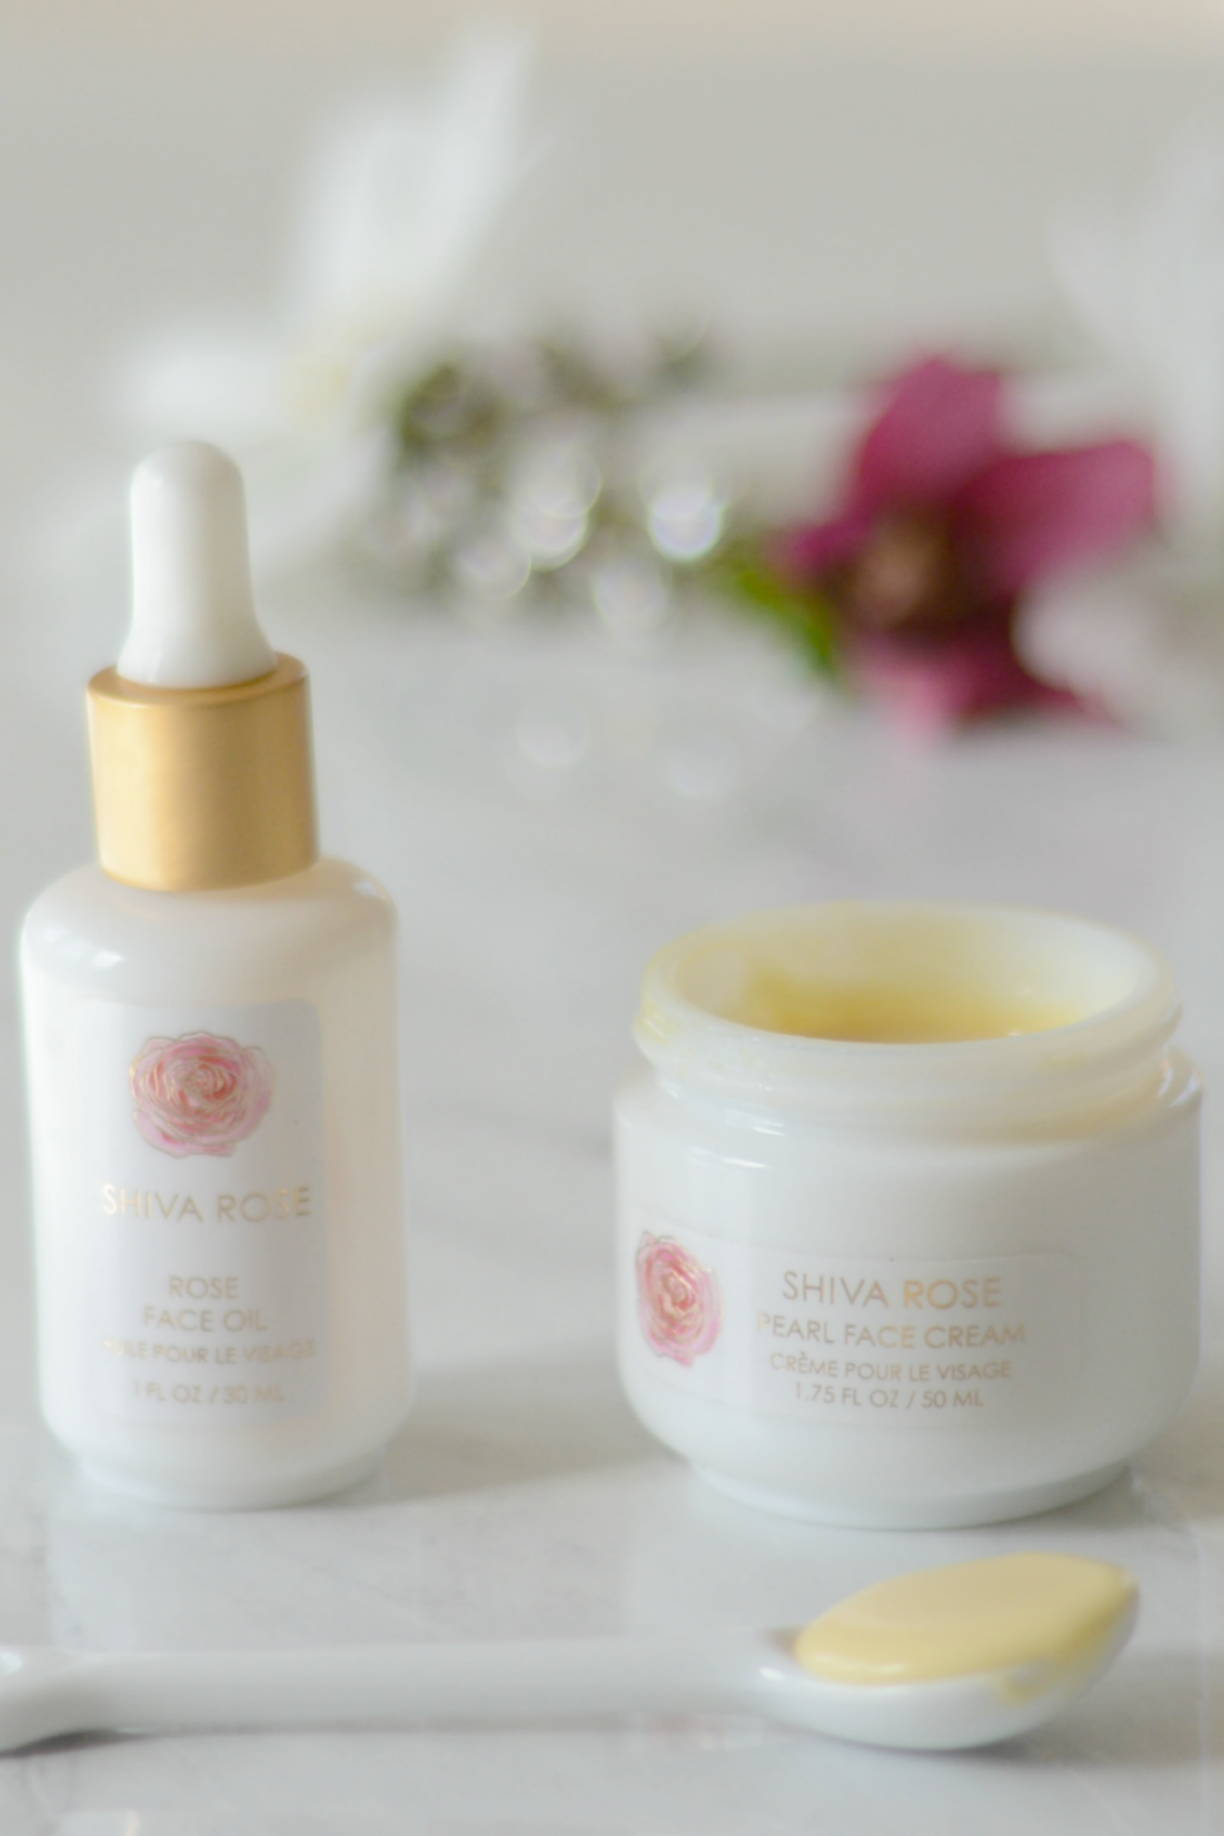 Shiva Rose Face Oil and Pearl Rose Face Cream at Art of Pure